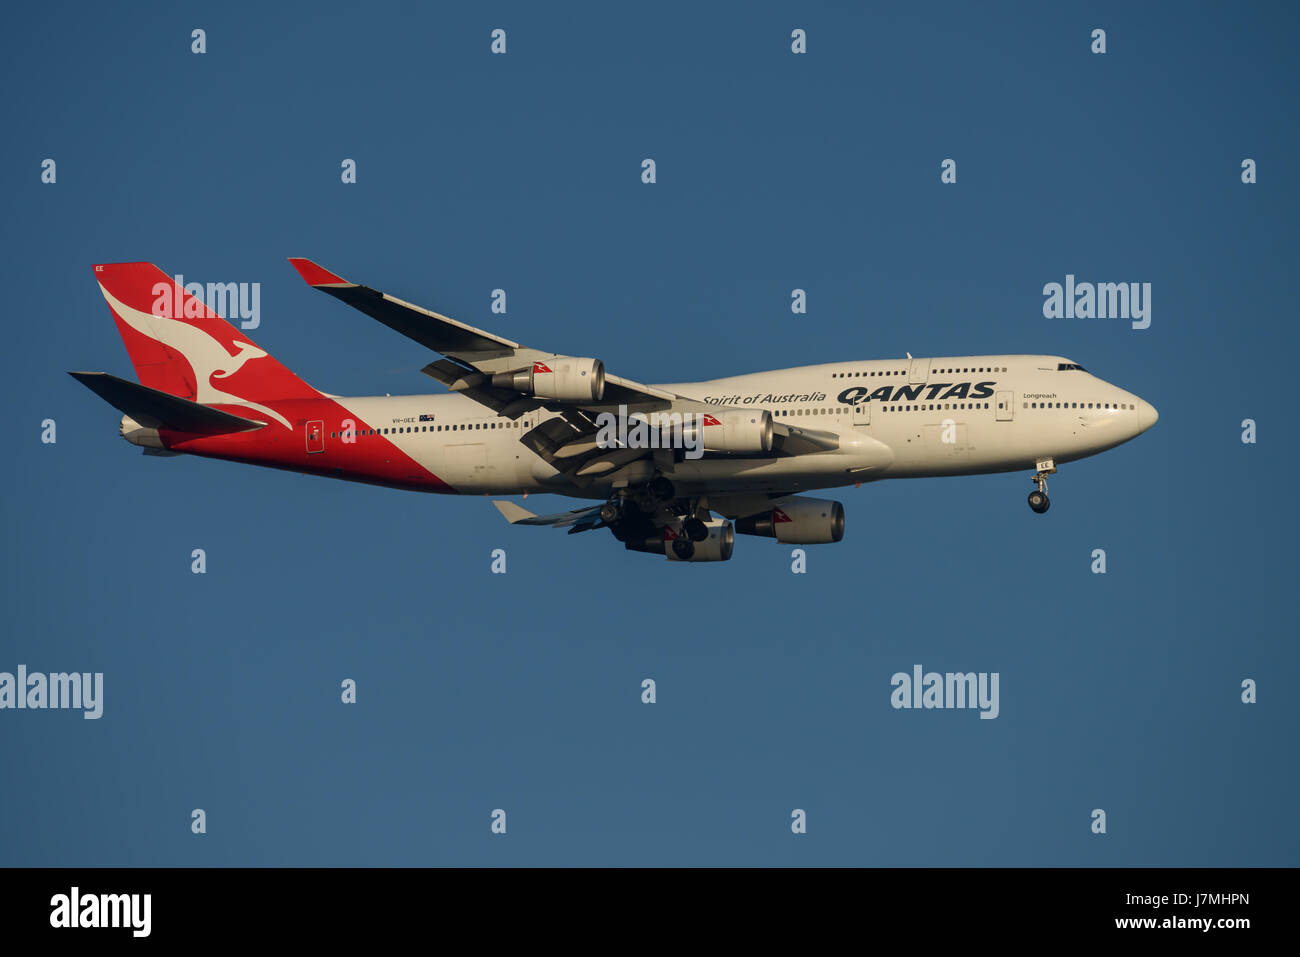 Qantas Airlines Boeing 747 on Final approach to Sydney Airport on Tuesday 23 May 2017 - Stock Image